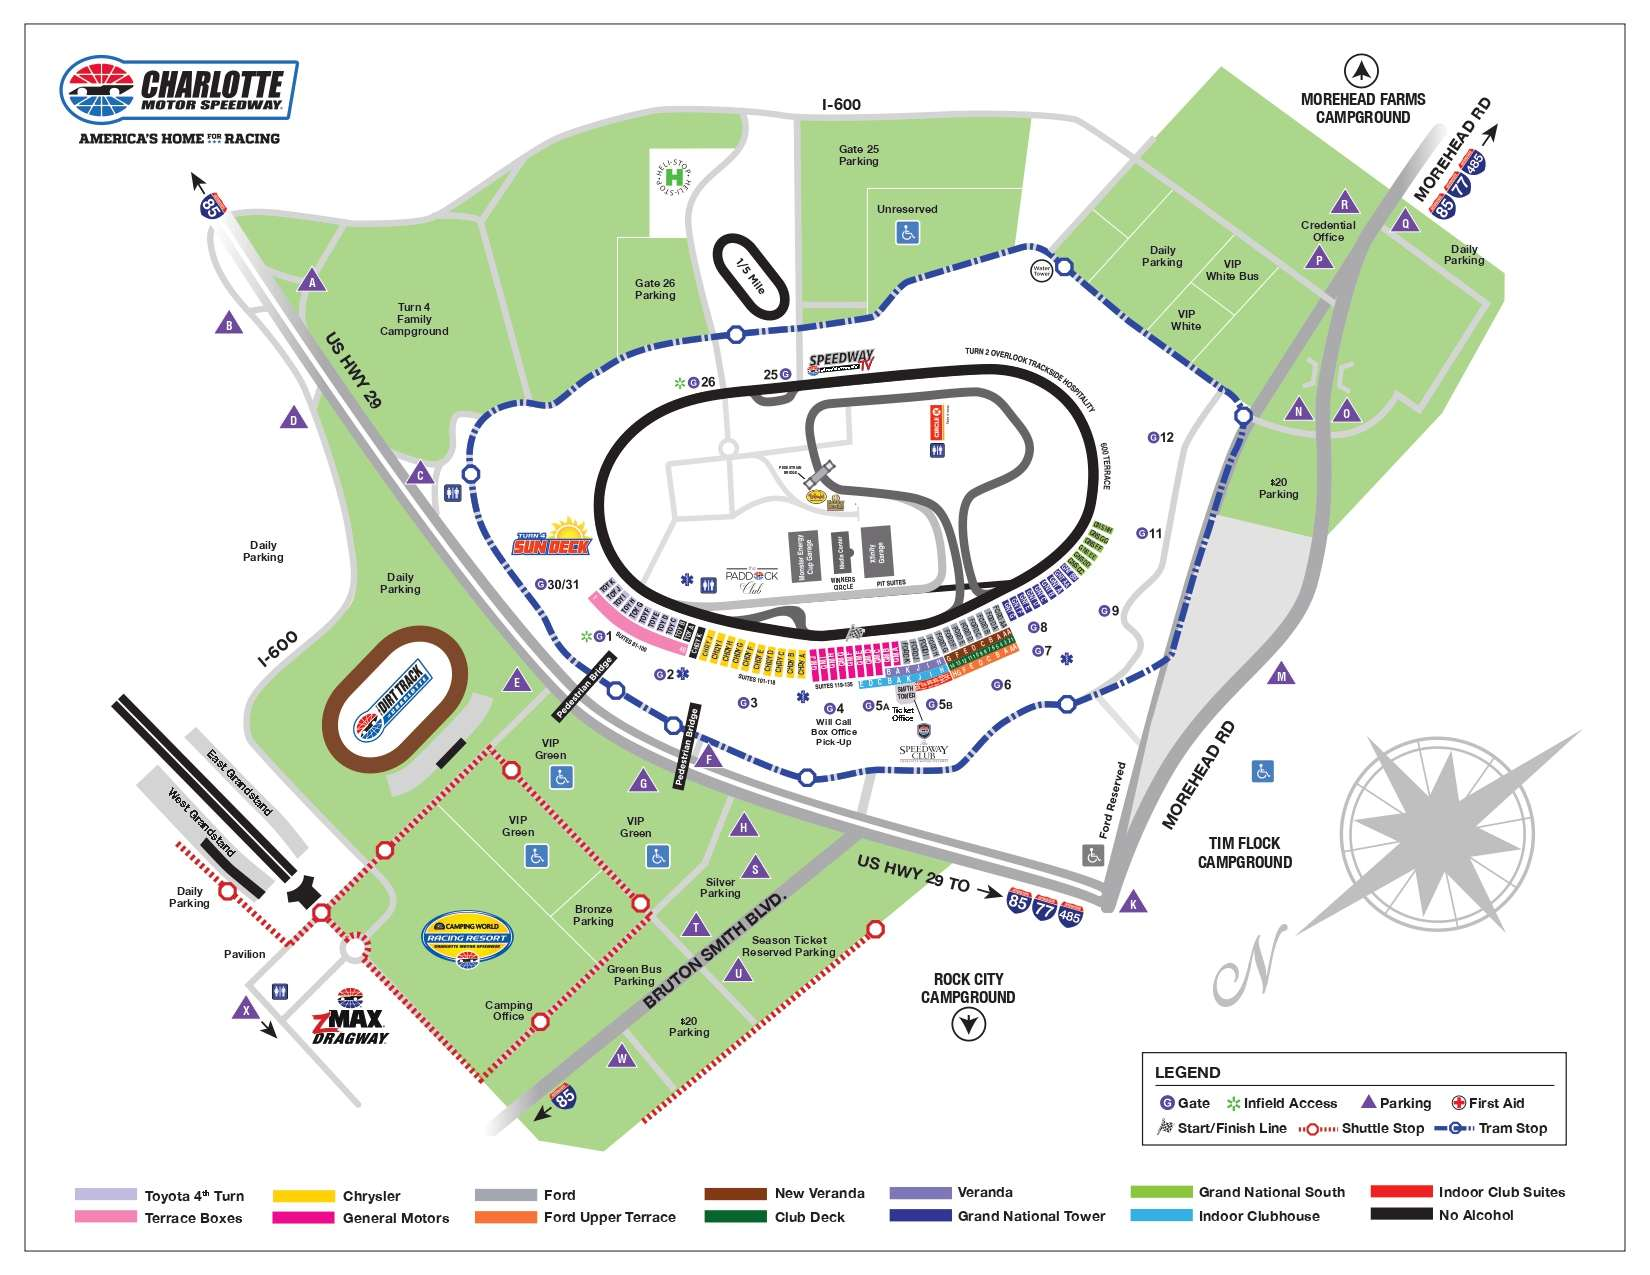 Charlotte Motor Speedway Layout Map to check seats, nearby roads, gates, entry, exits, important facilities, section, transportation, etc.